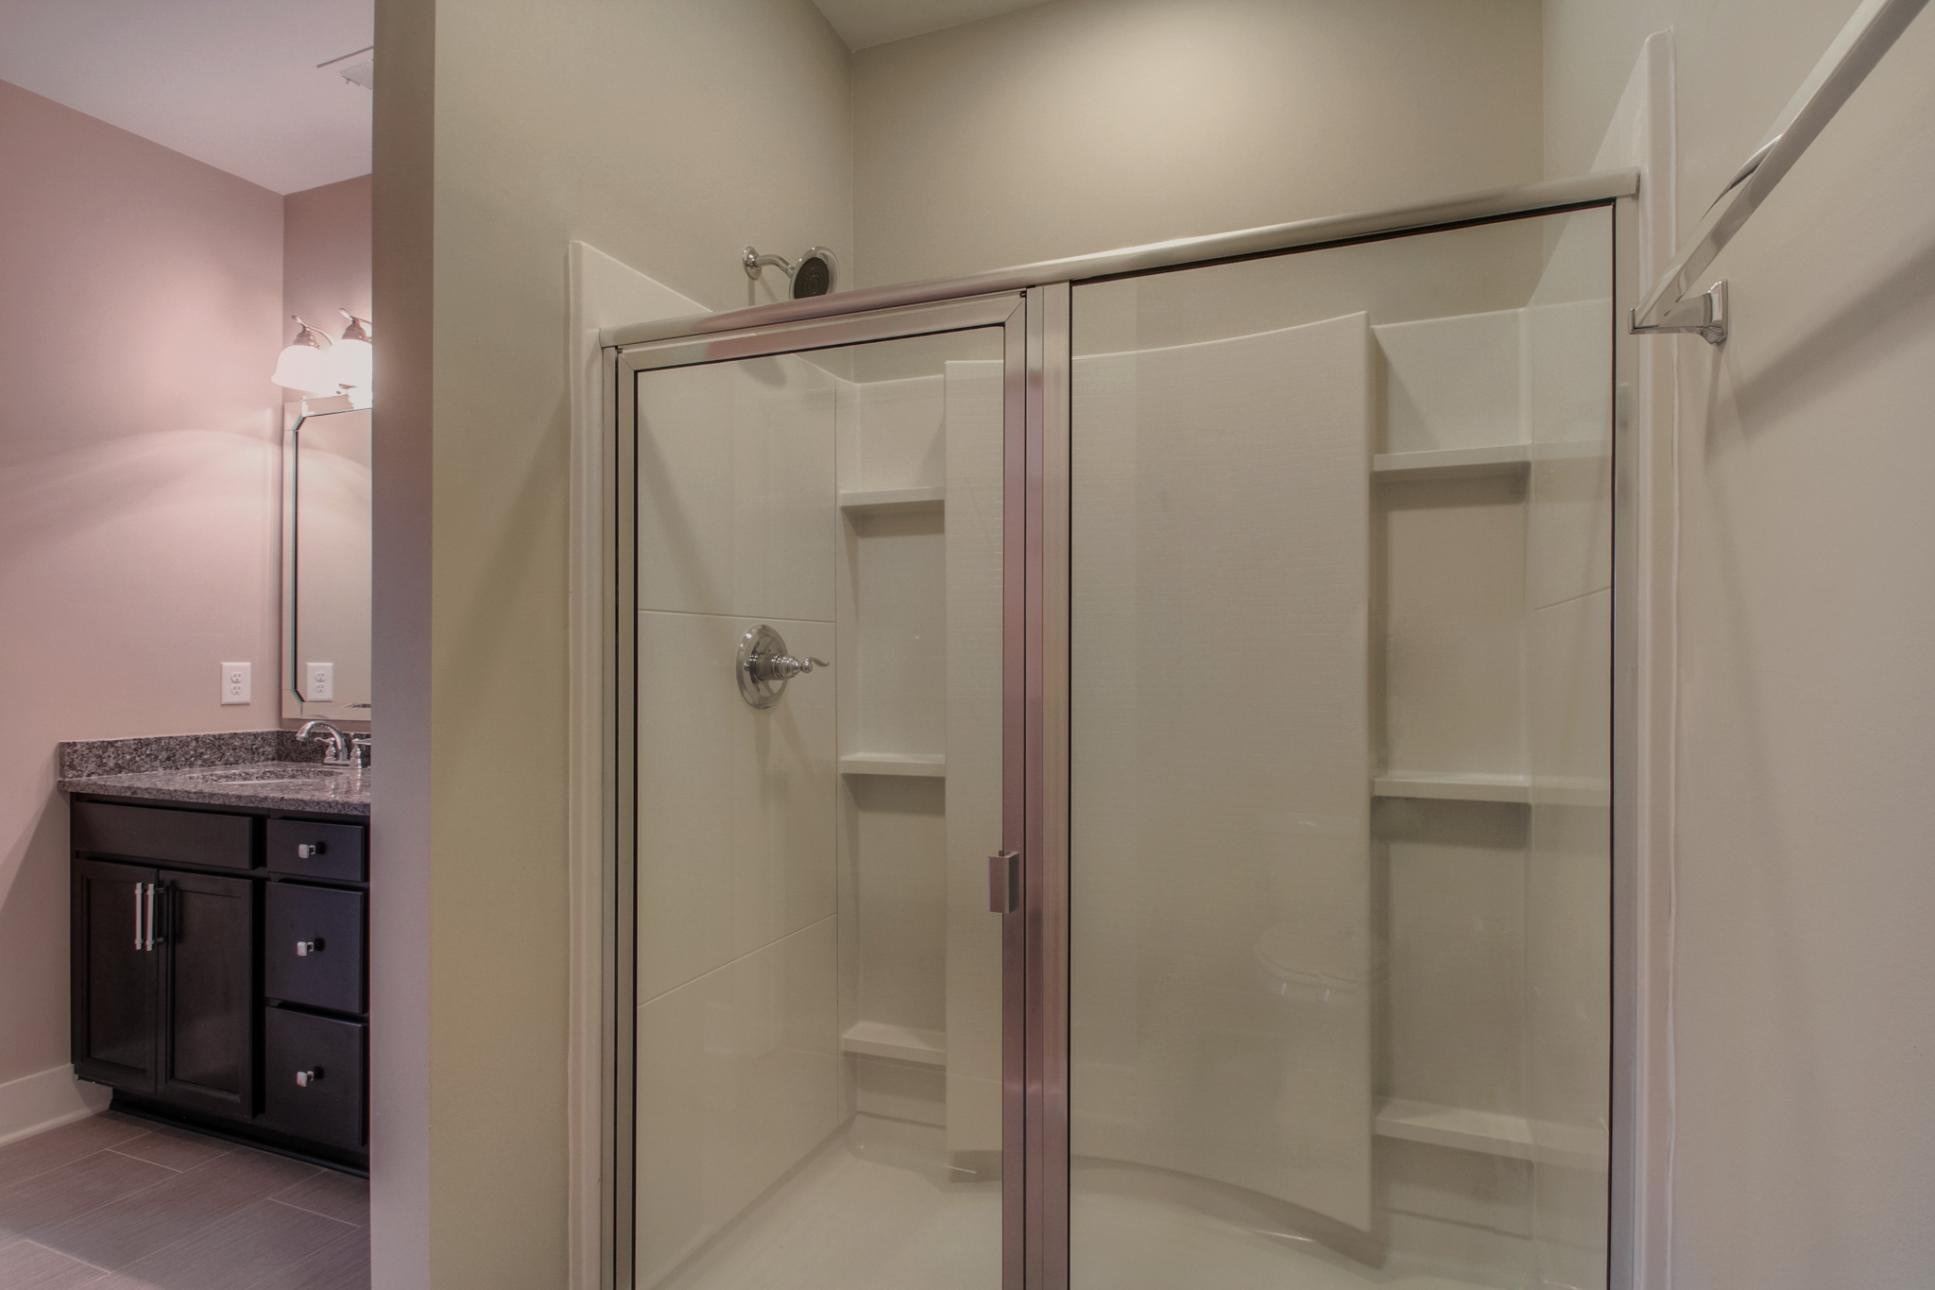 Bathroom featured in The Waverleigh Courtyard Cottage By Goodall Homes in Knoxville, TN